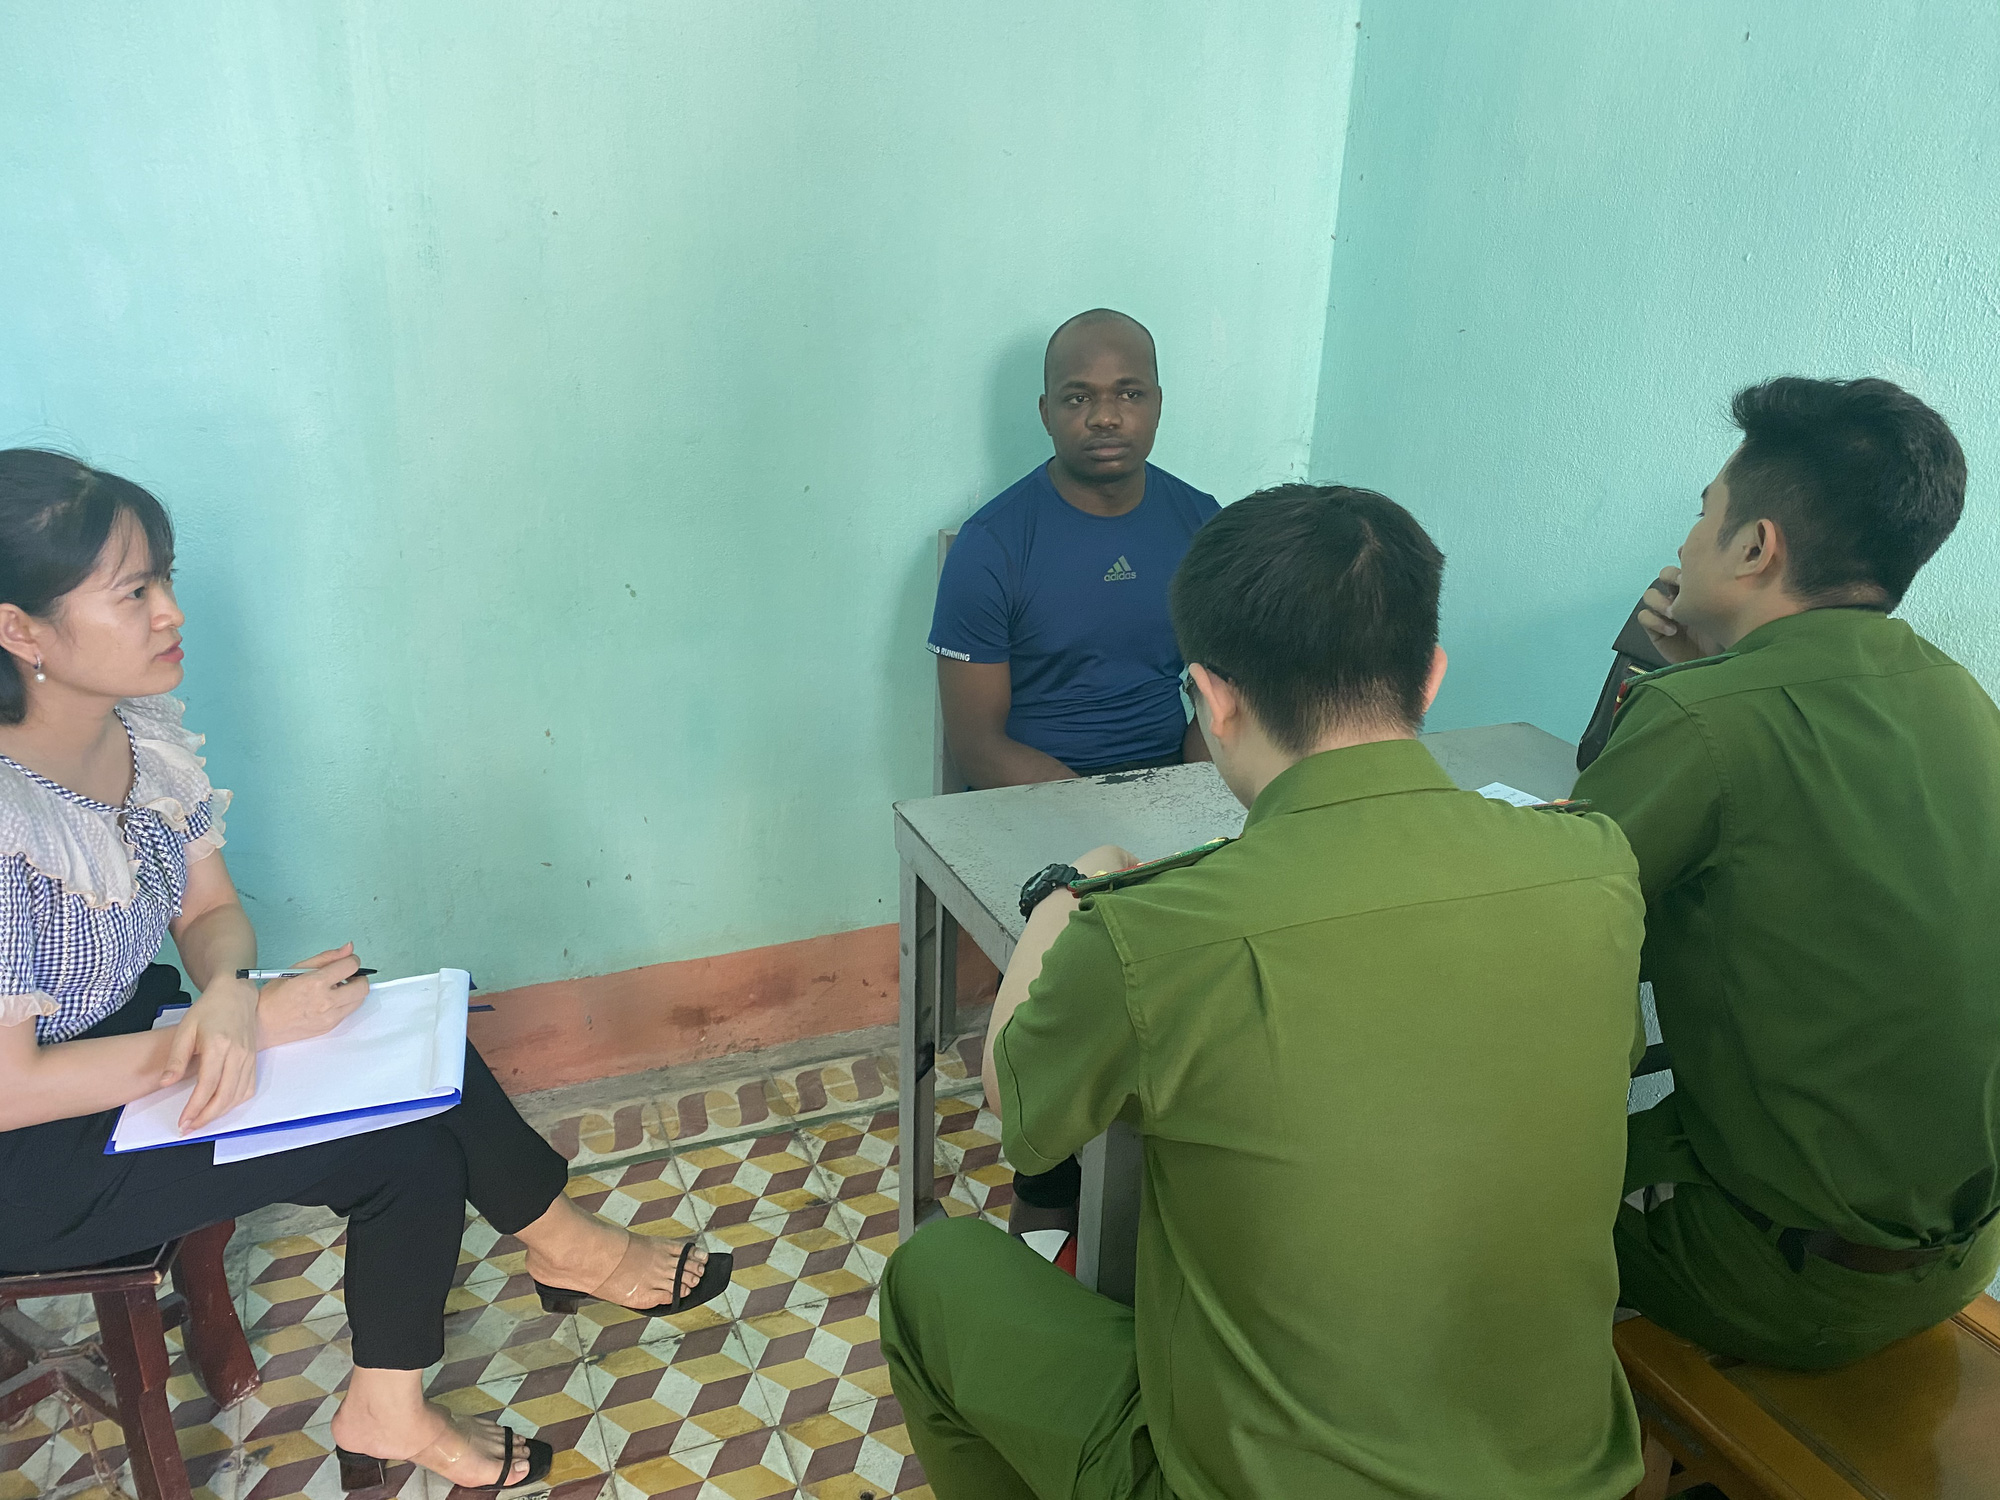 Nigerian Ajearo Chuckwugekwu Godwin, 34, is interrogated by officers at a police station in Thanh Hoa Province, Vietnam in this supplied photo.